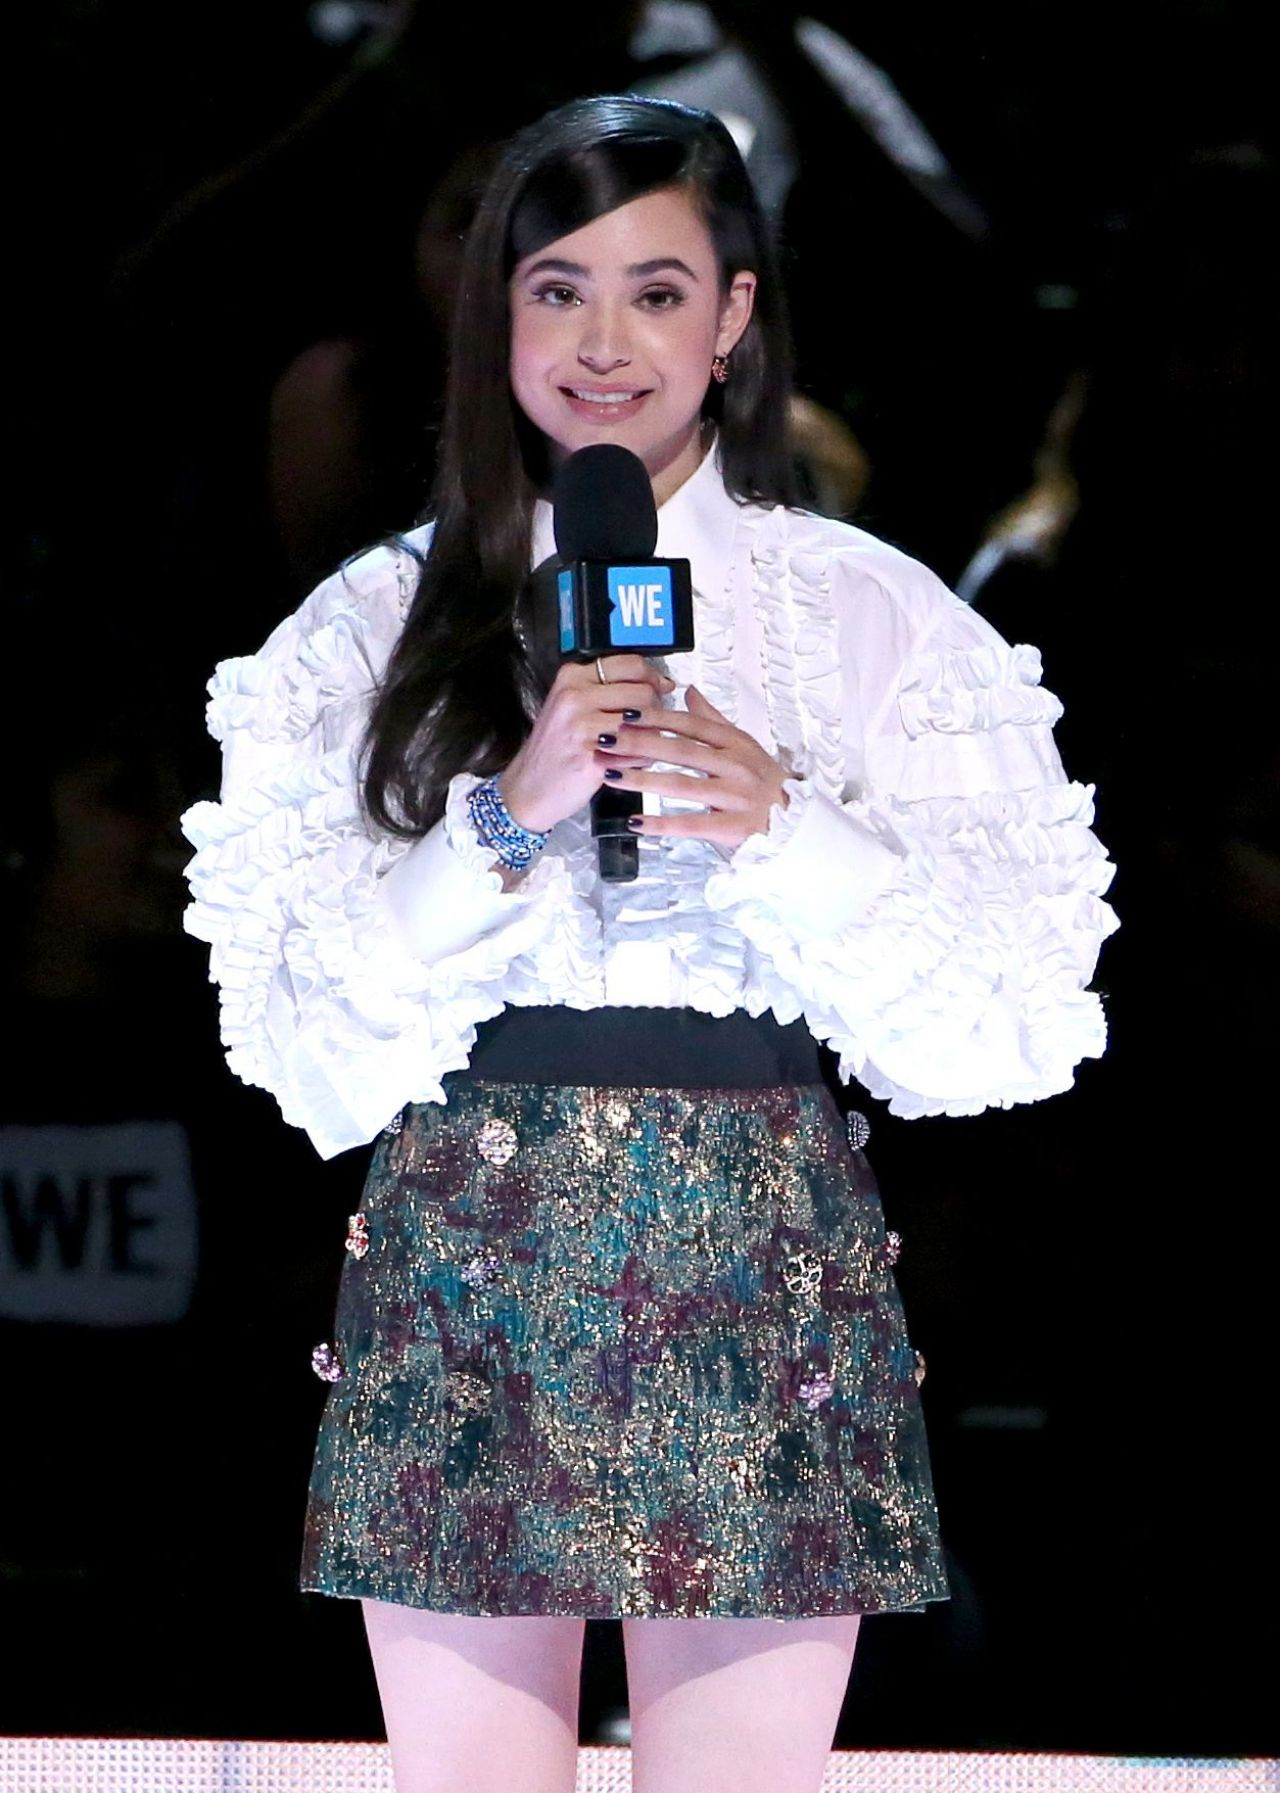 Sofia carson at we day california in los angeles nude (35 photo)